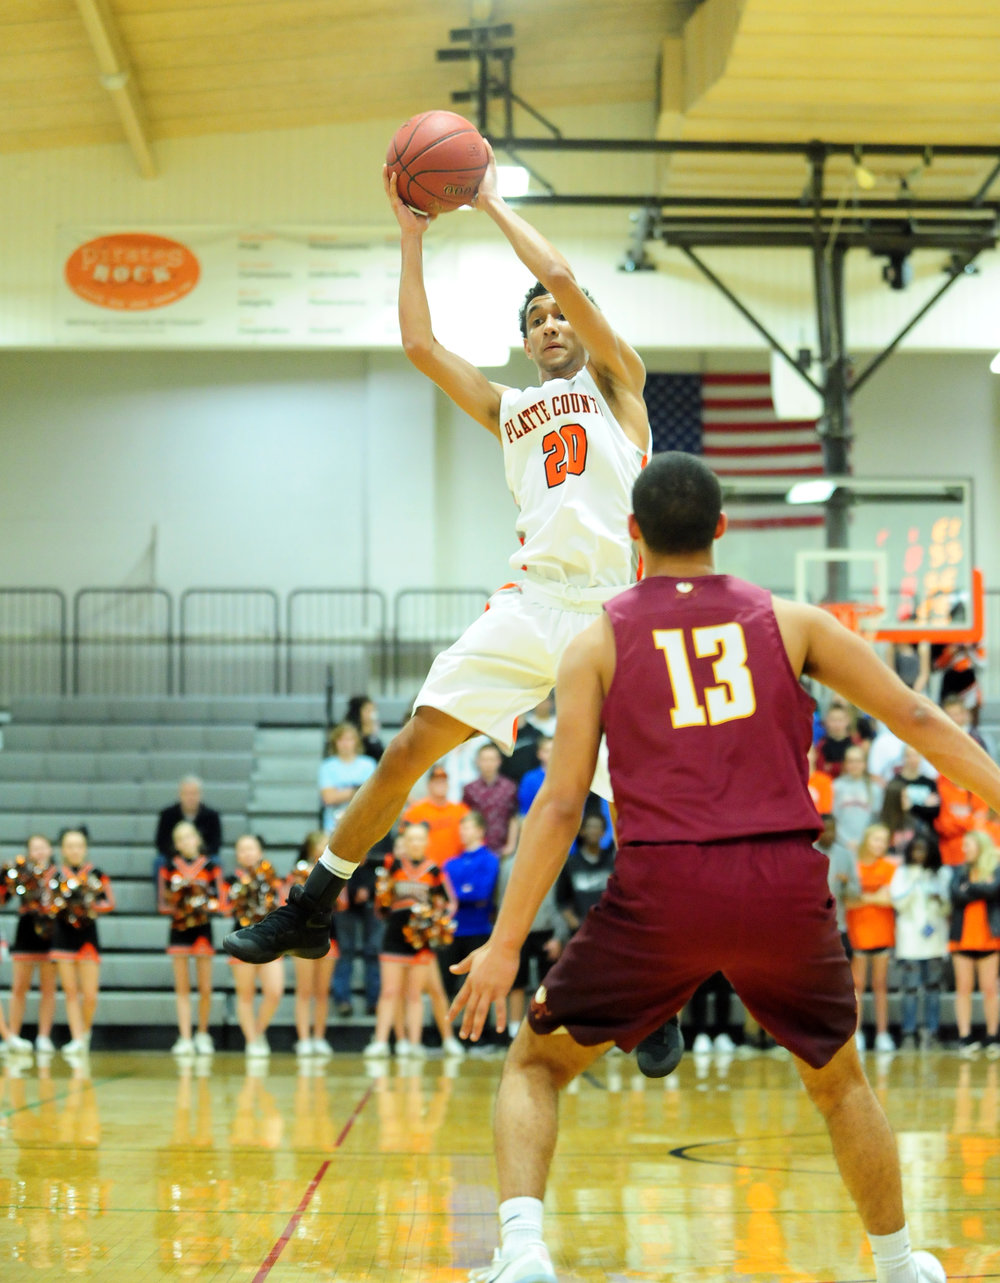 NICK INGRAM/Citizen photo Platte County senior guard DeAndre Rollins goes high to collect a pass against Winnetonka on Friday, Feb. 17 at Platte County High School.